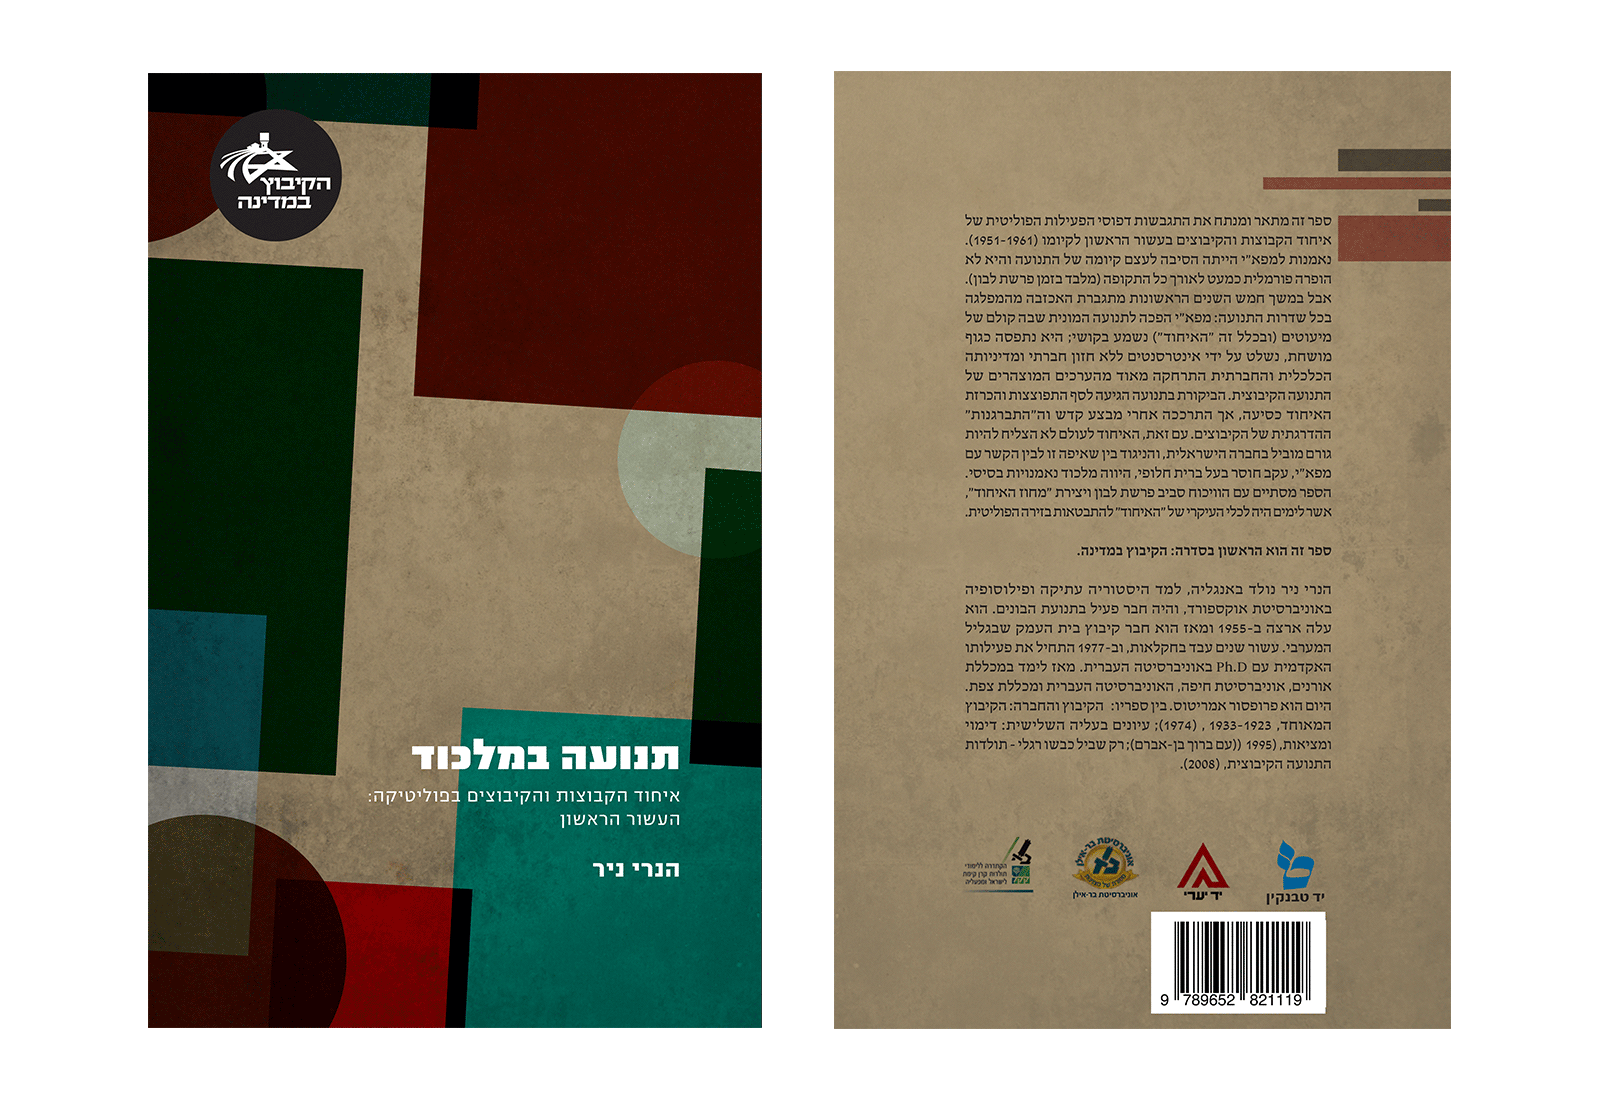 https://bigeyes.co.il/wp-content/uploads/2019/08/kibbutz-books-5.png